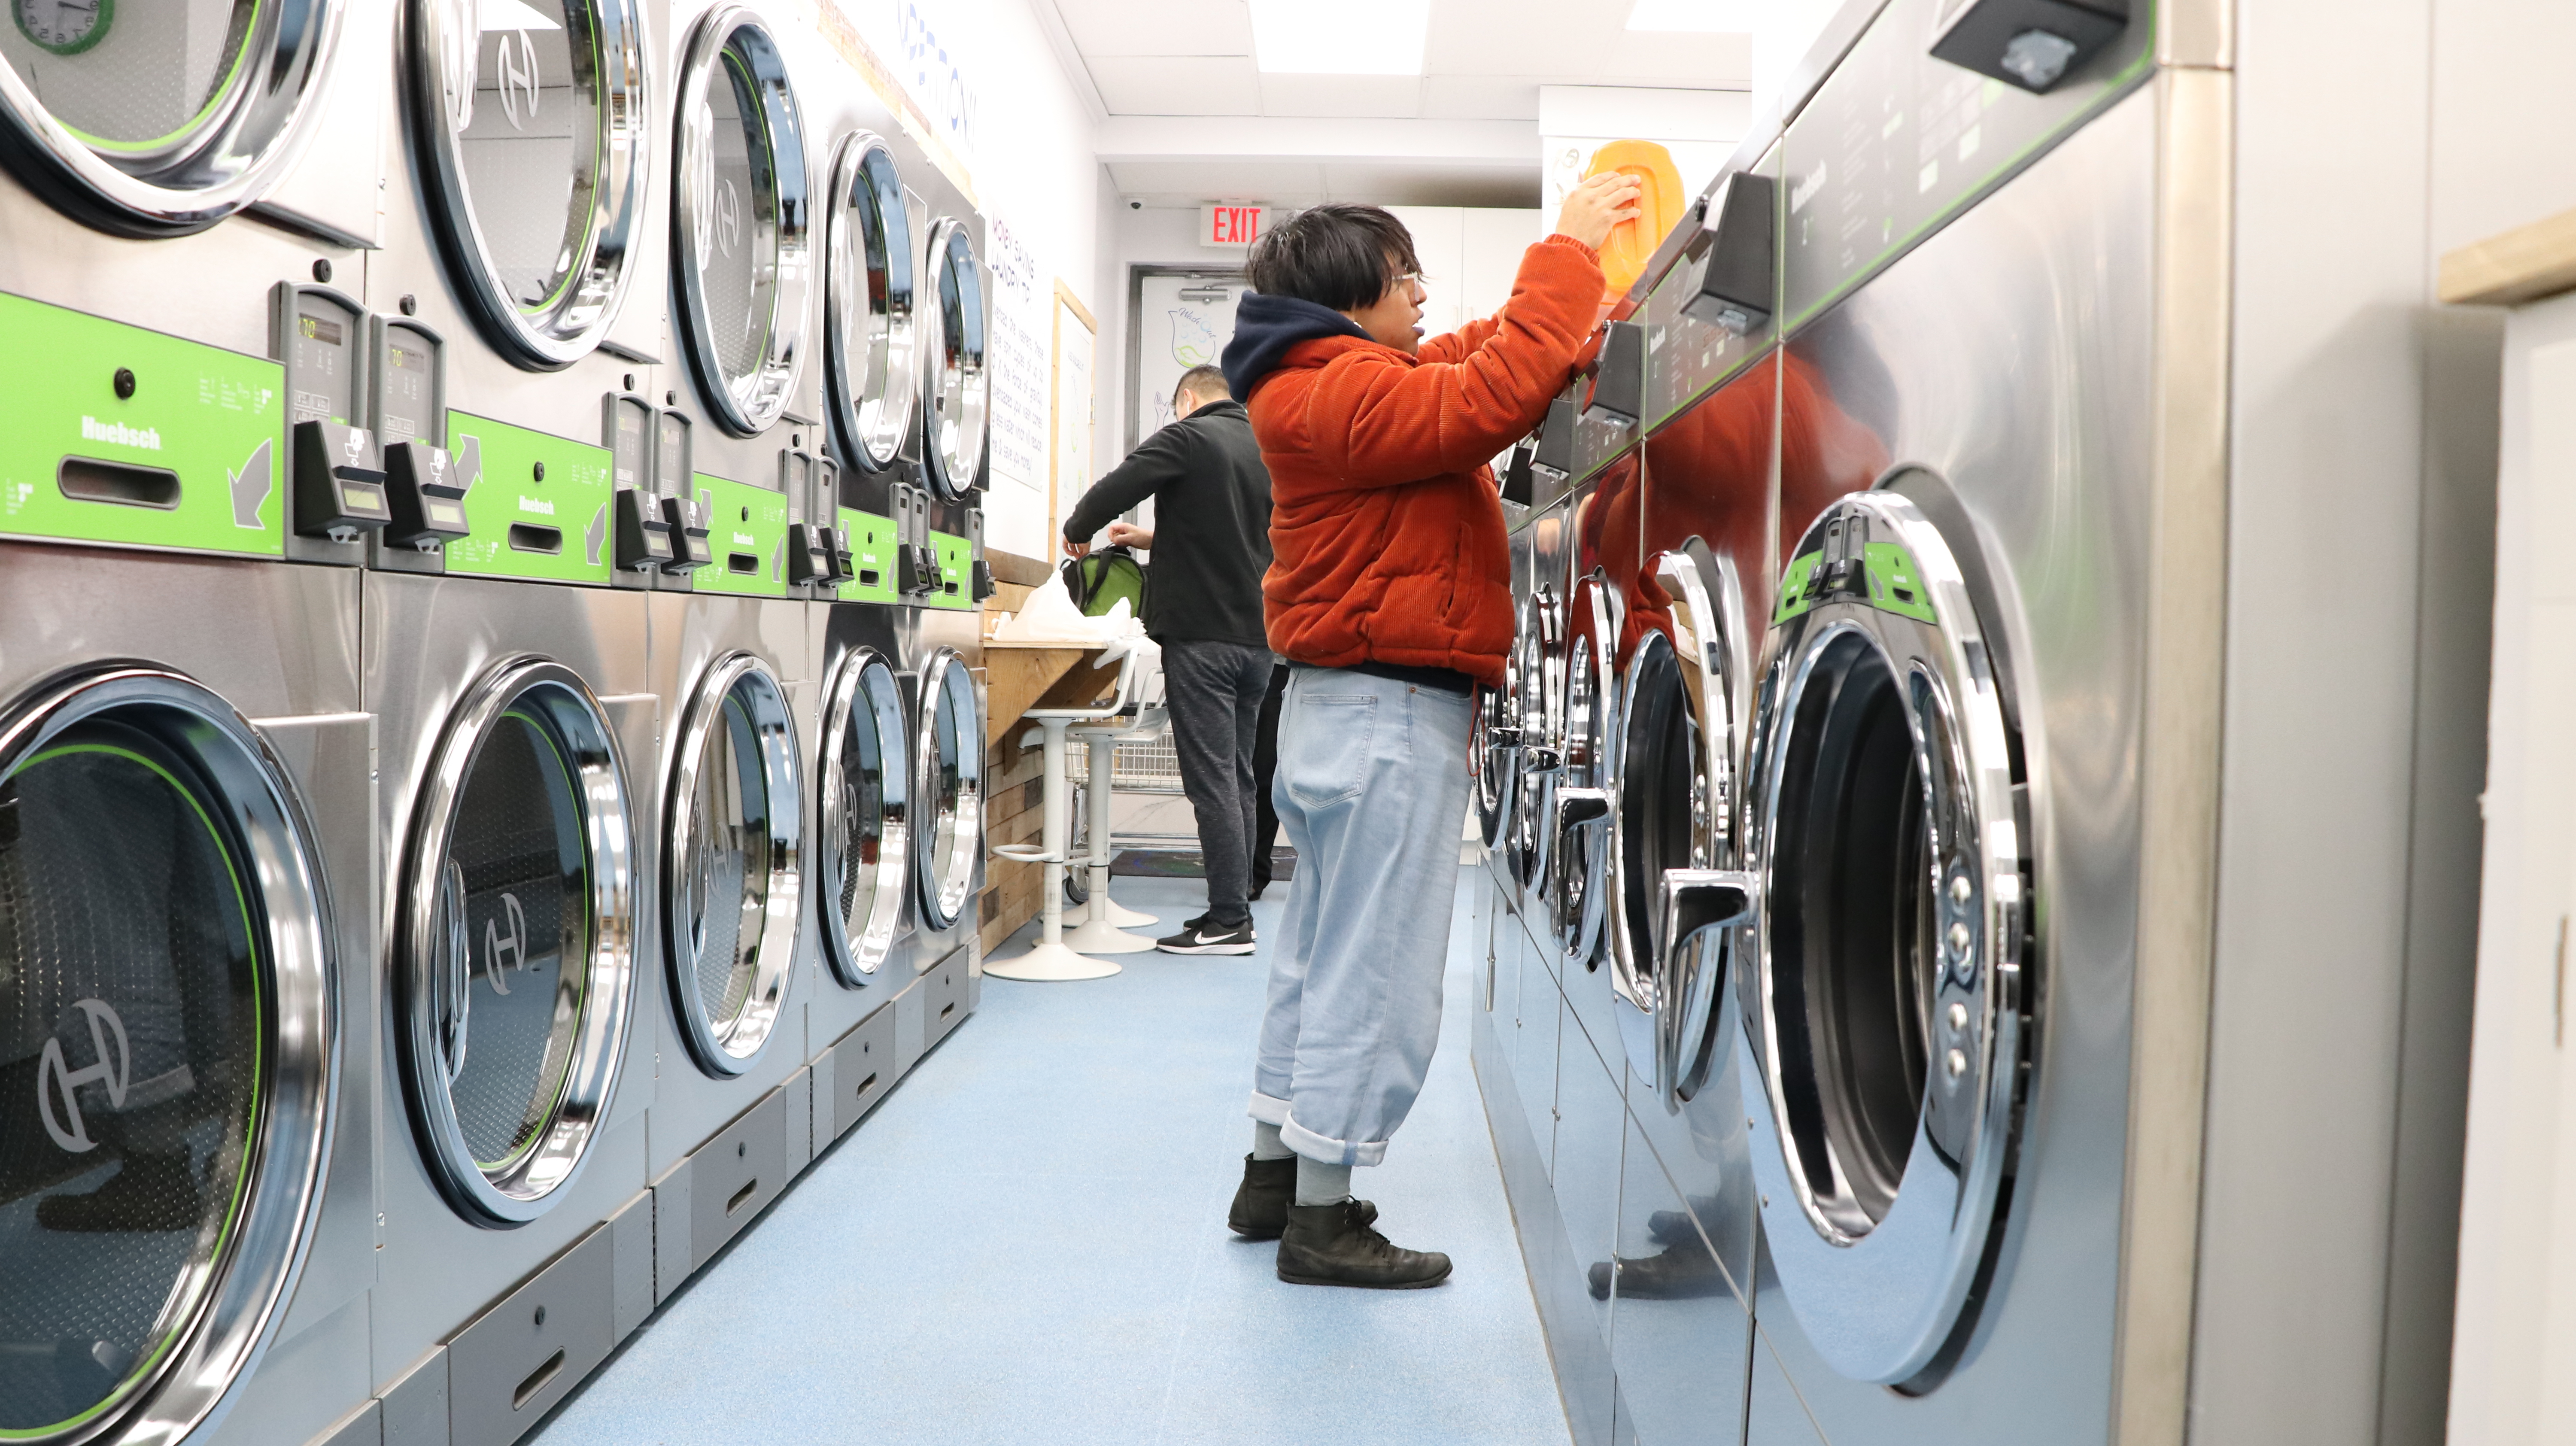 The Coin Laundry Association says laundromats often serve low-income renters who live in densely populated neighbourhoods. (Maryse Zeidler/CBC)